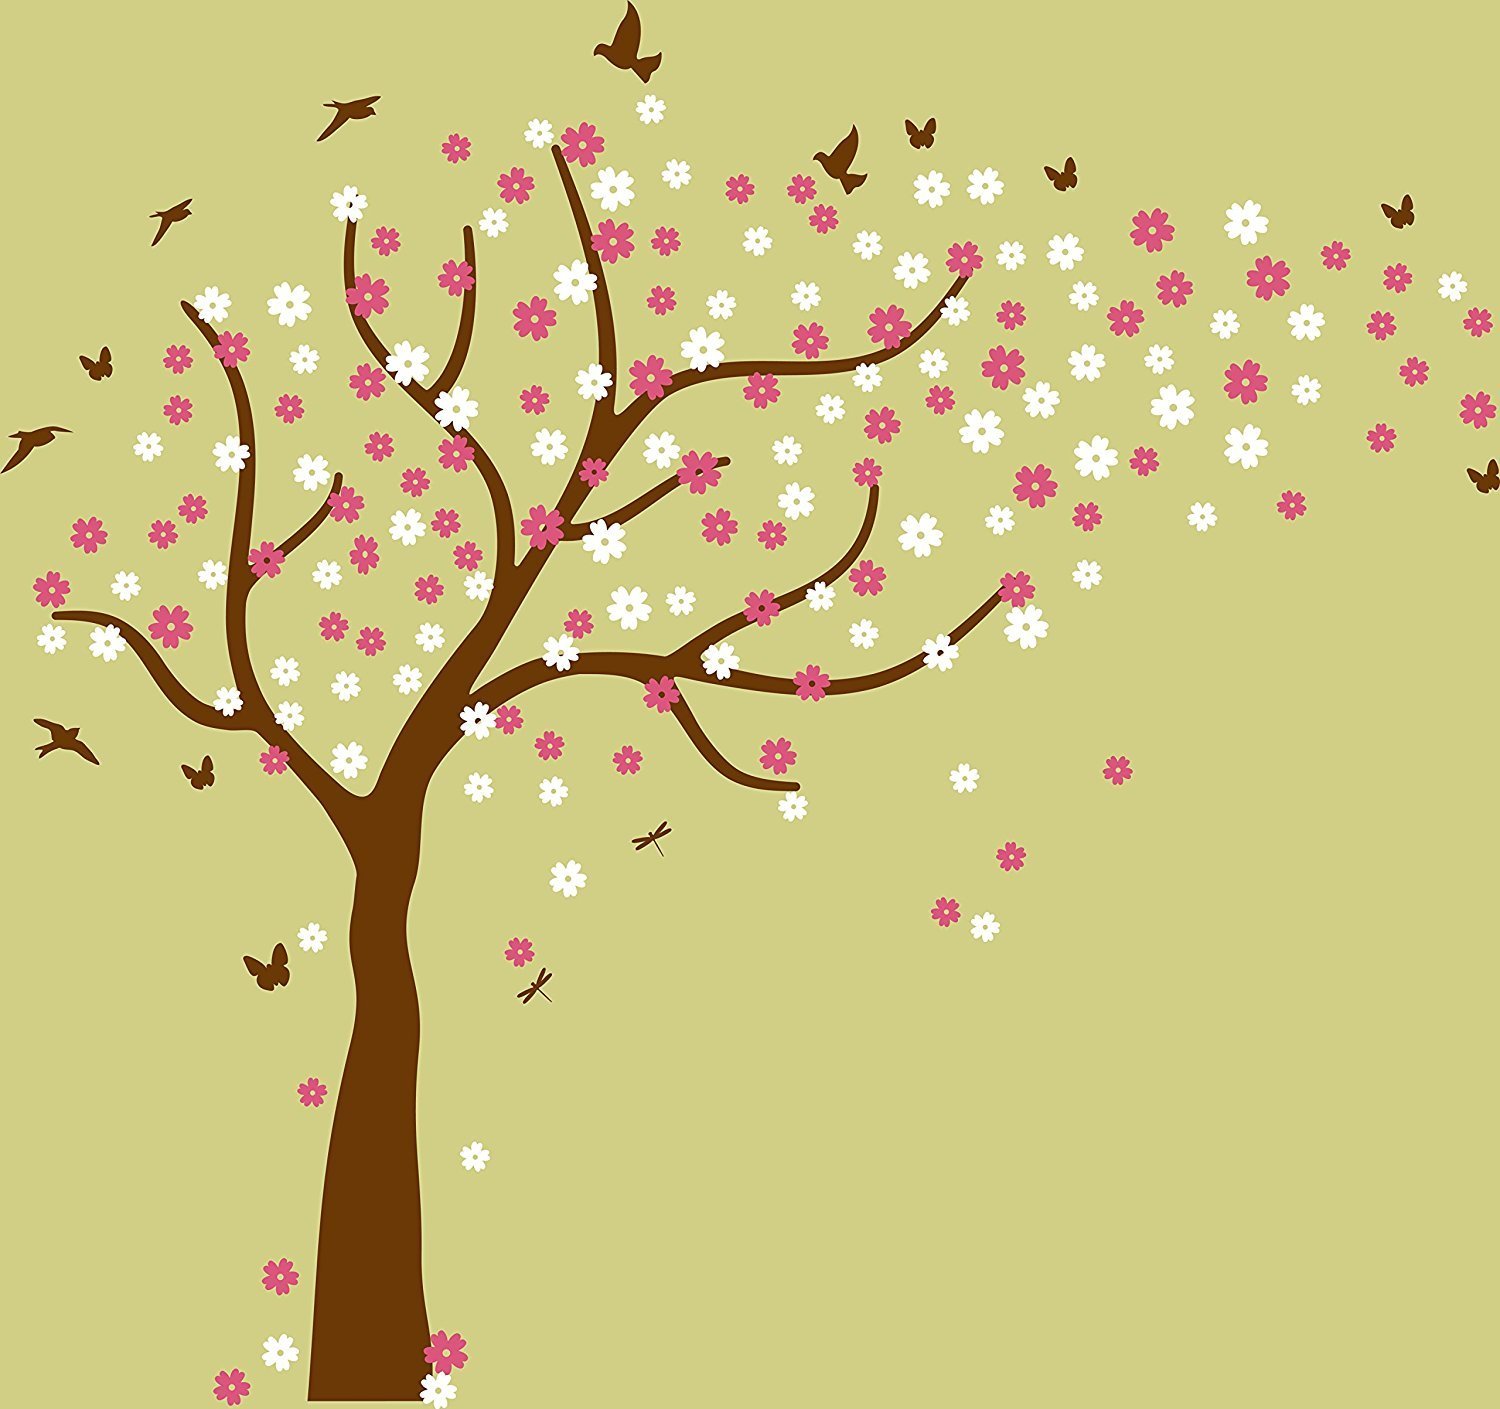 Amazon.com: Family Tree Wall Decals Colorful Cherry Blossom Tree ...